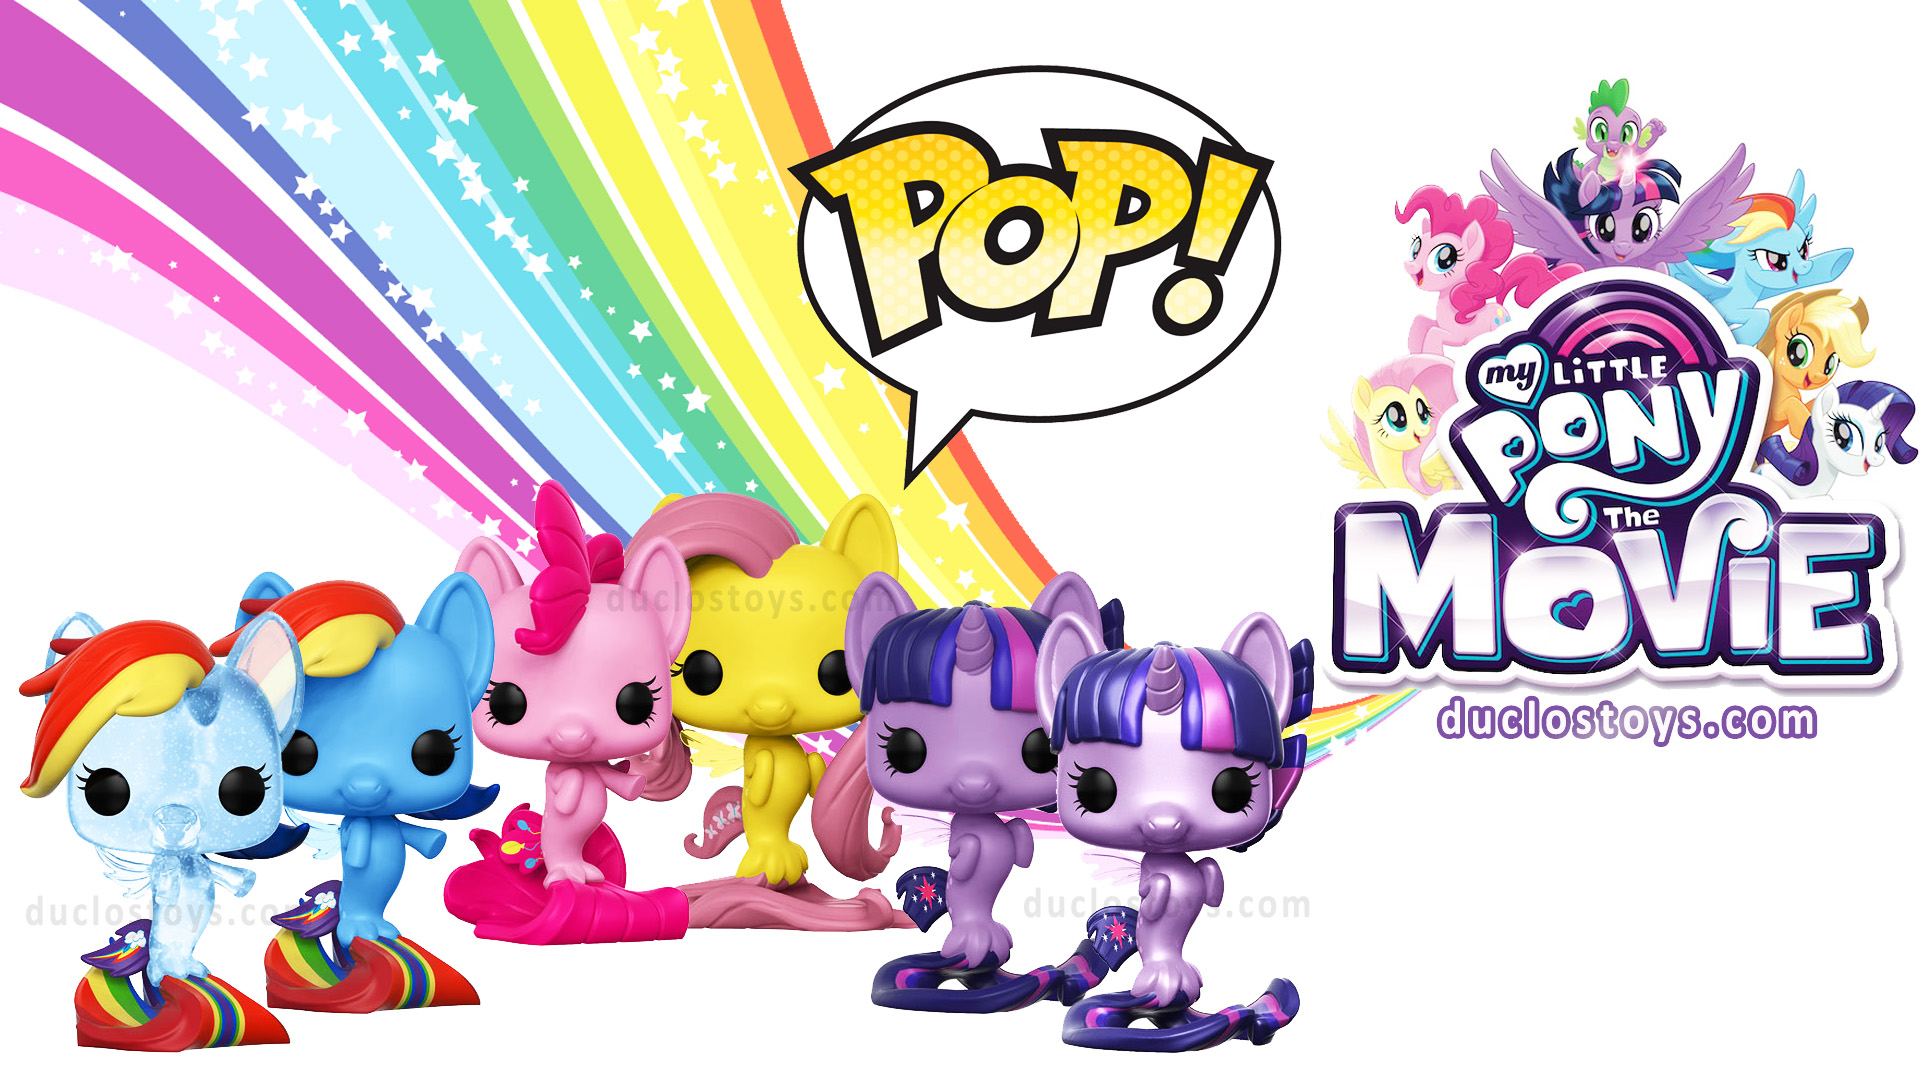 Funko Pop My Little Pony Mlp Movie Duclos Toys Action